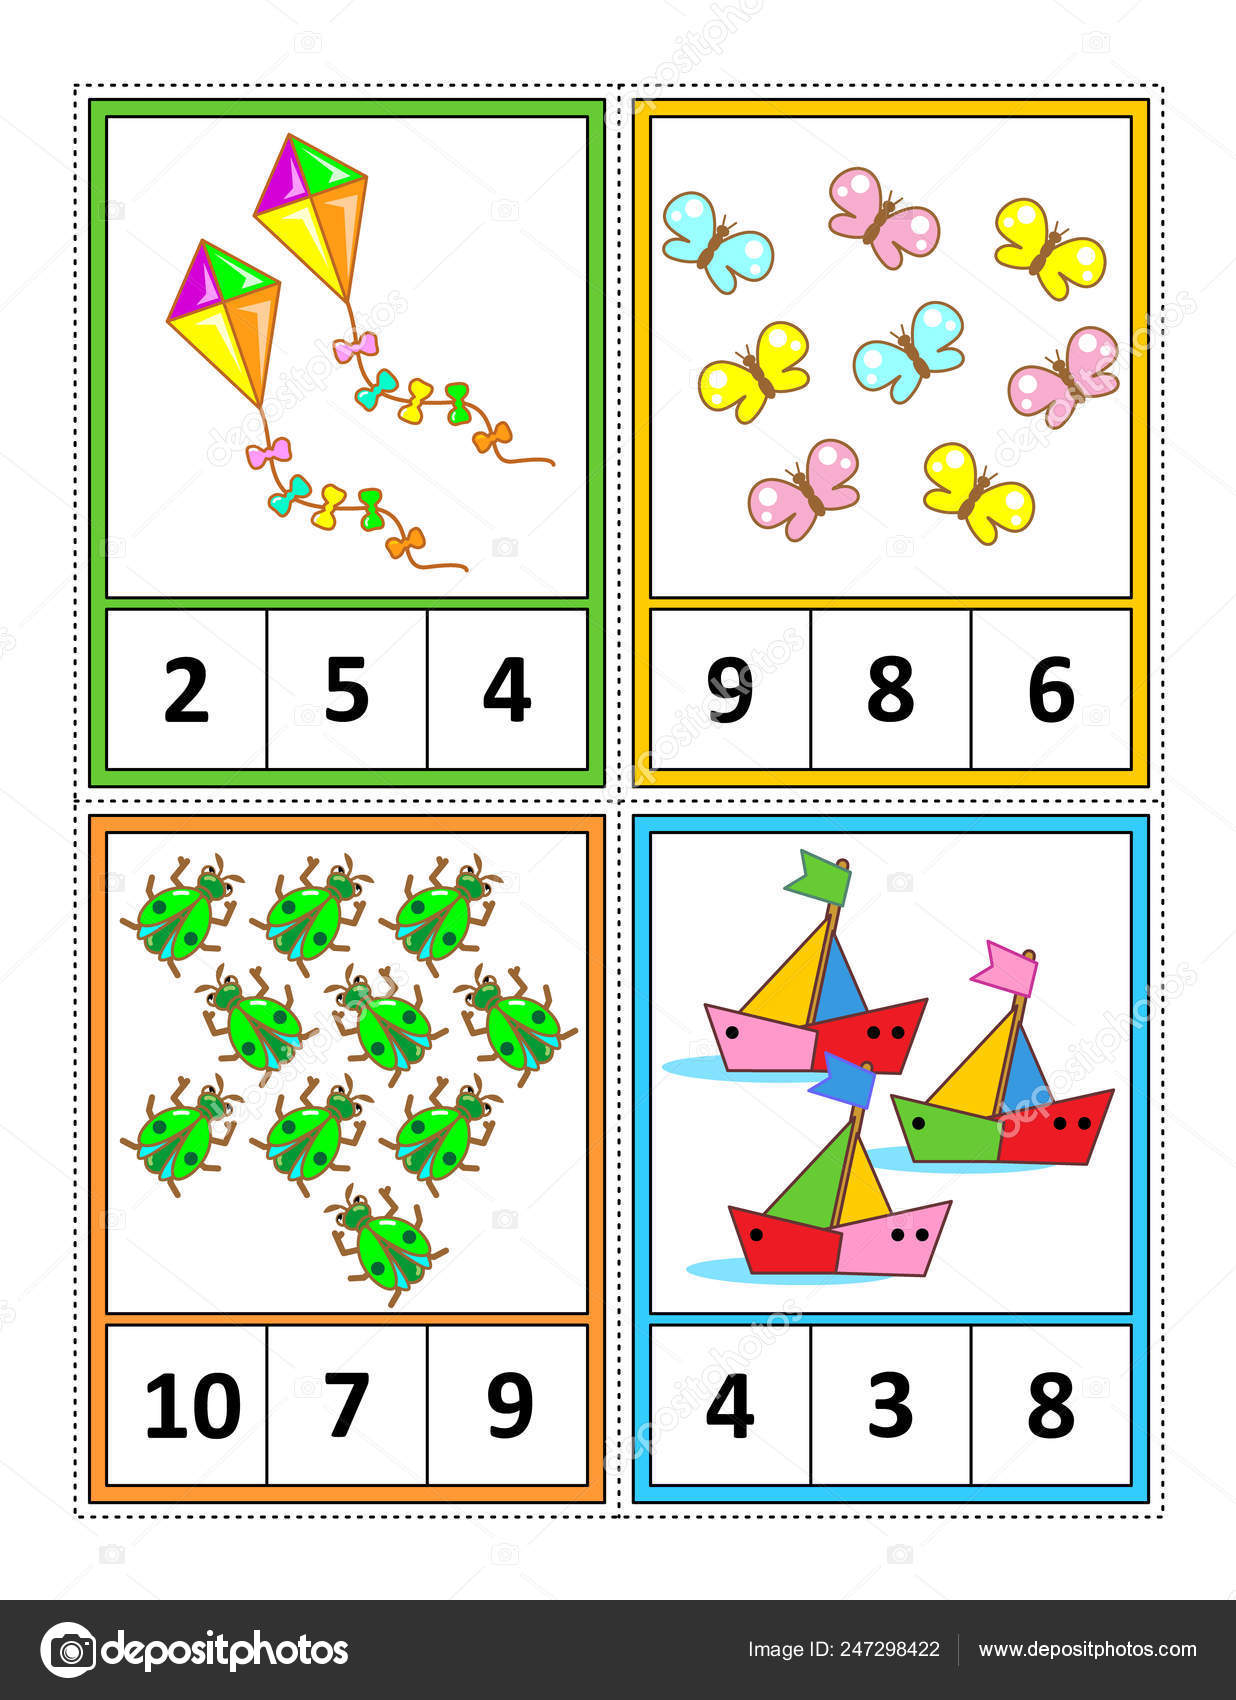 Spring Season Themed Counting Practice Kids Worksheet Four